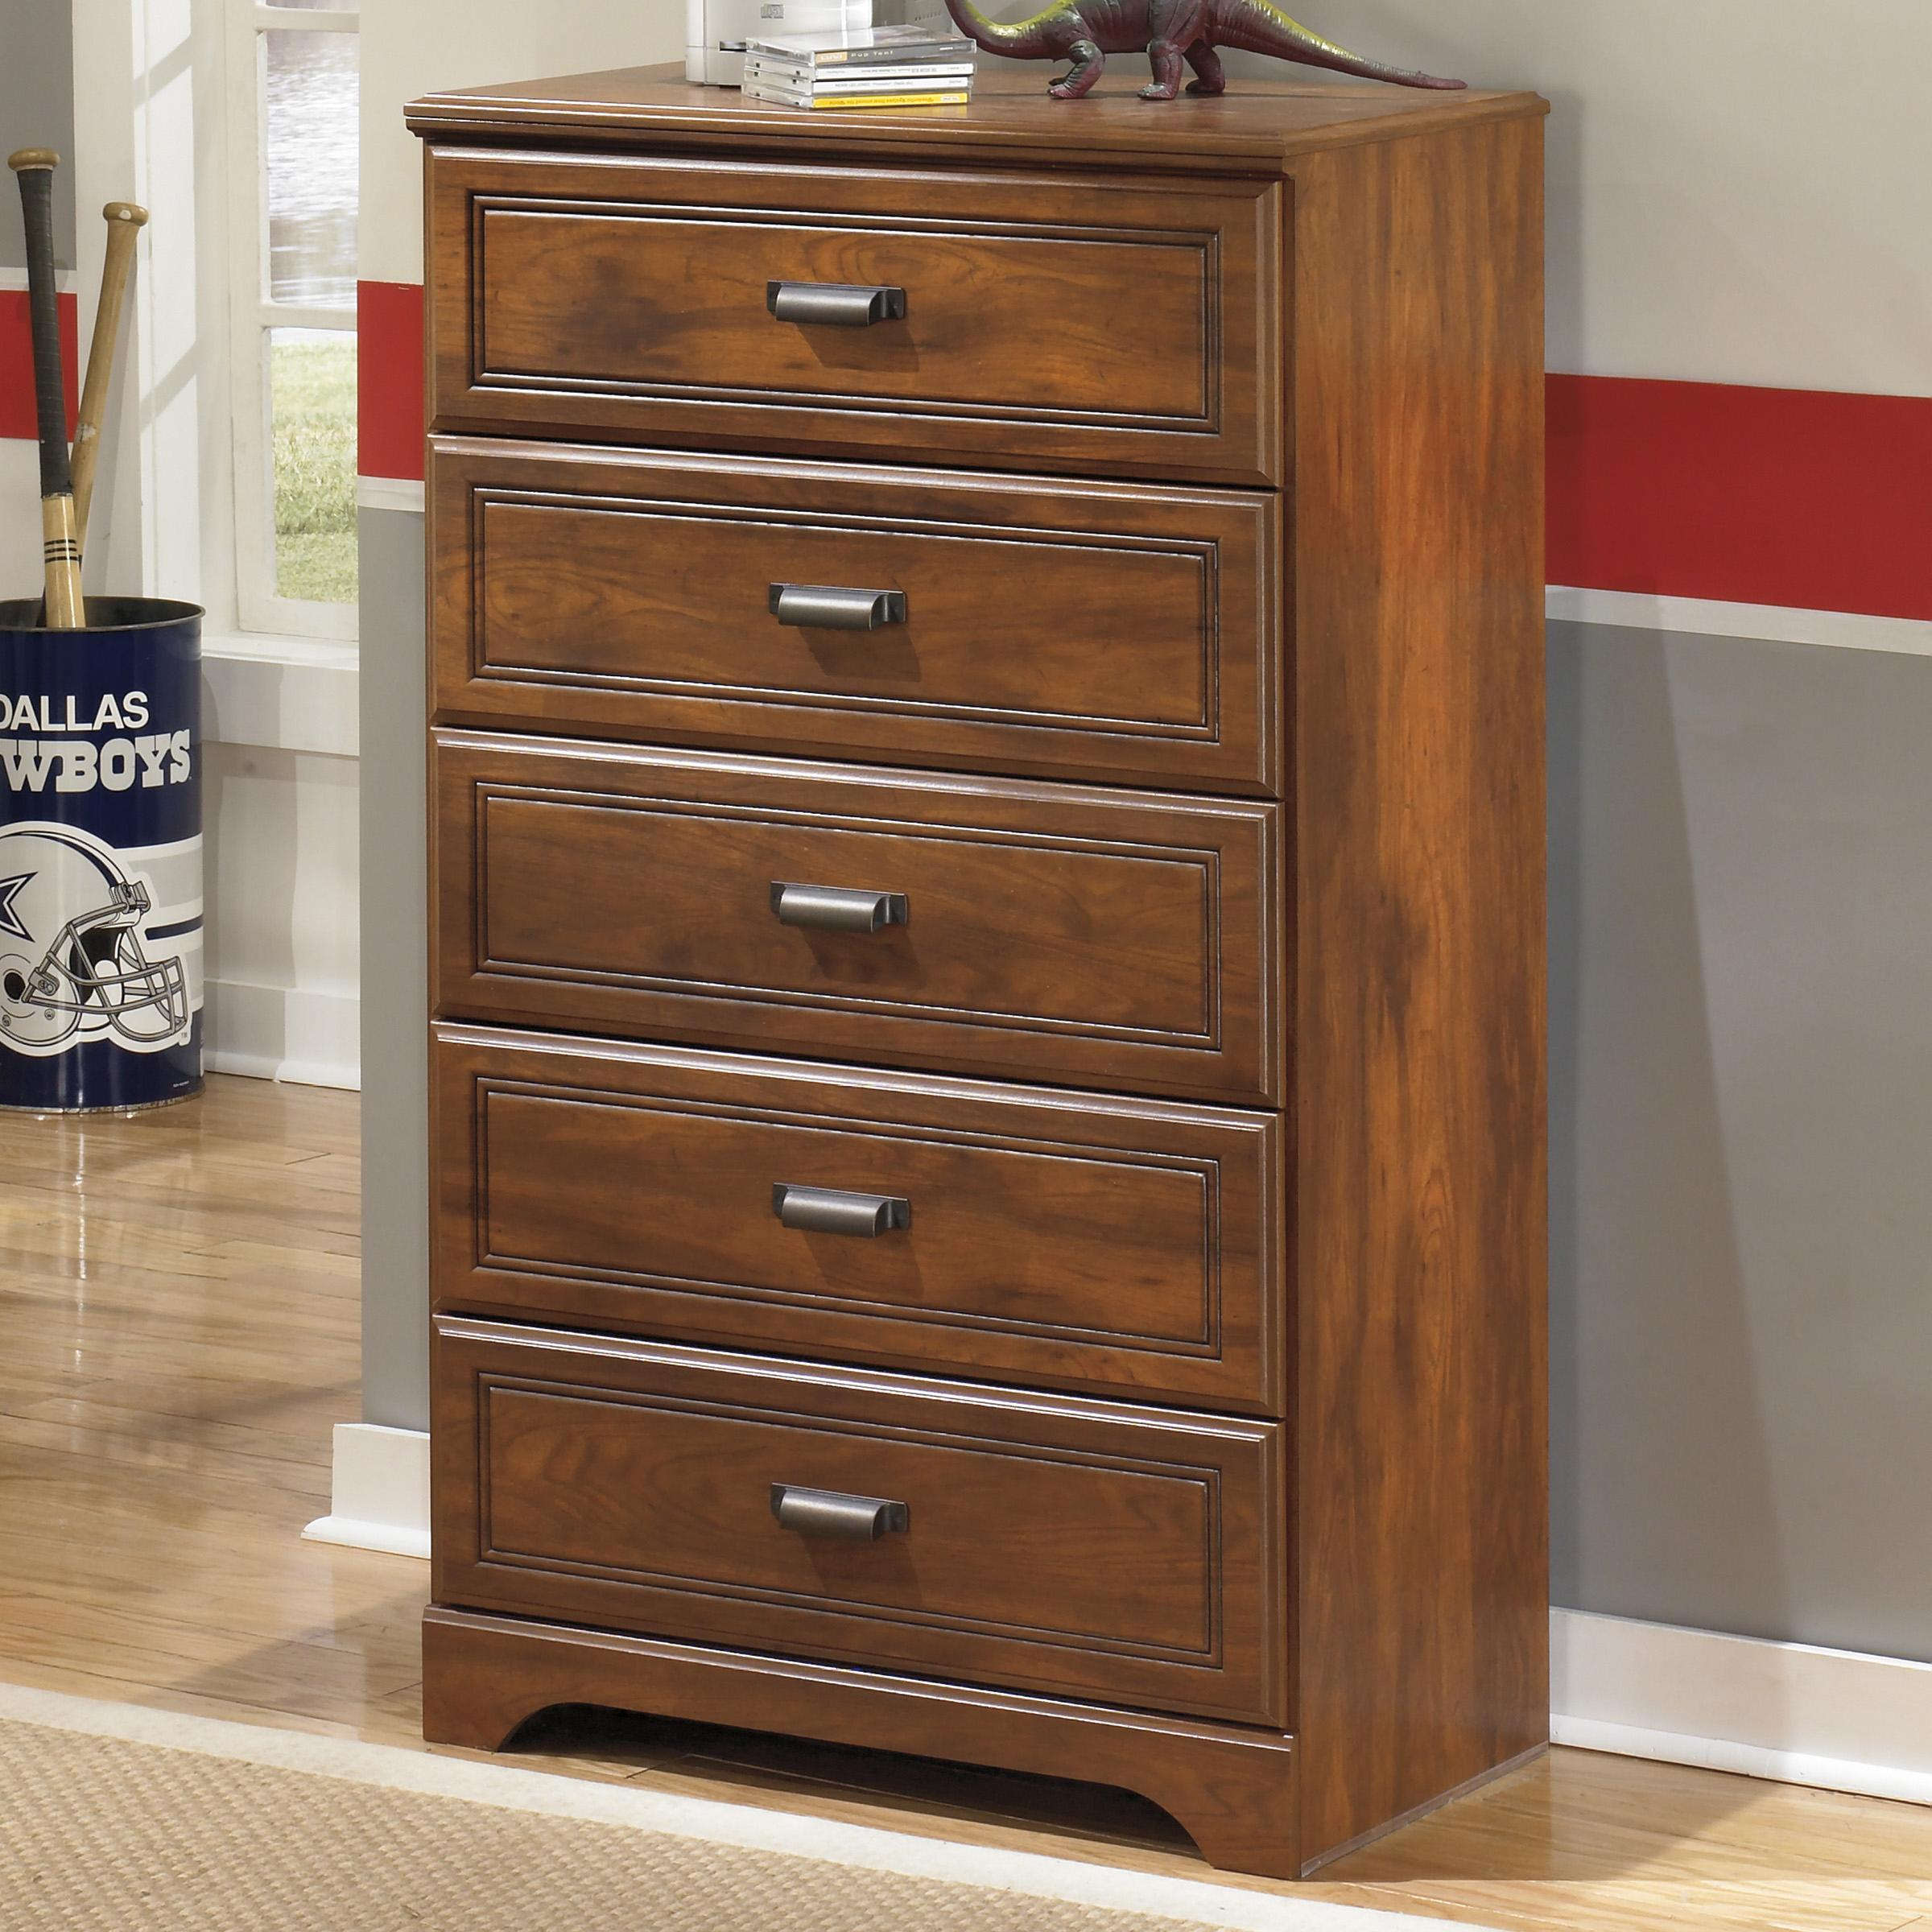 Barchan Five Drawer Chest by Signature Design by Ashley at Houston's Yuma Furniture